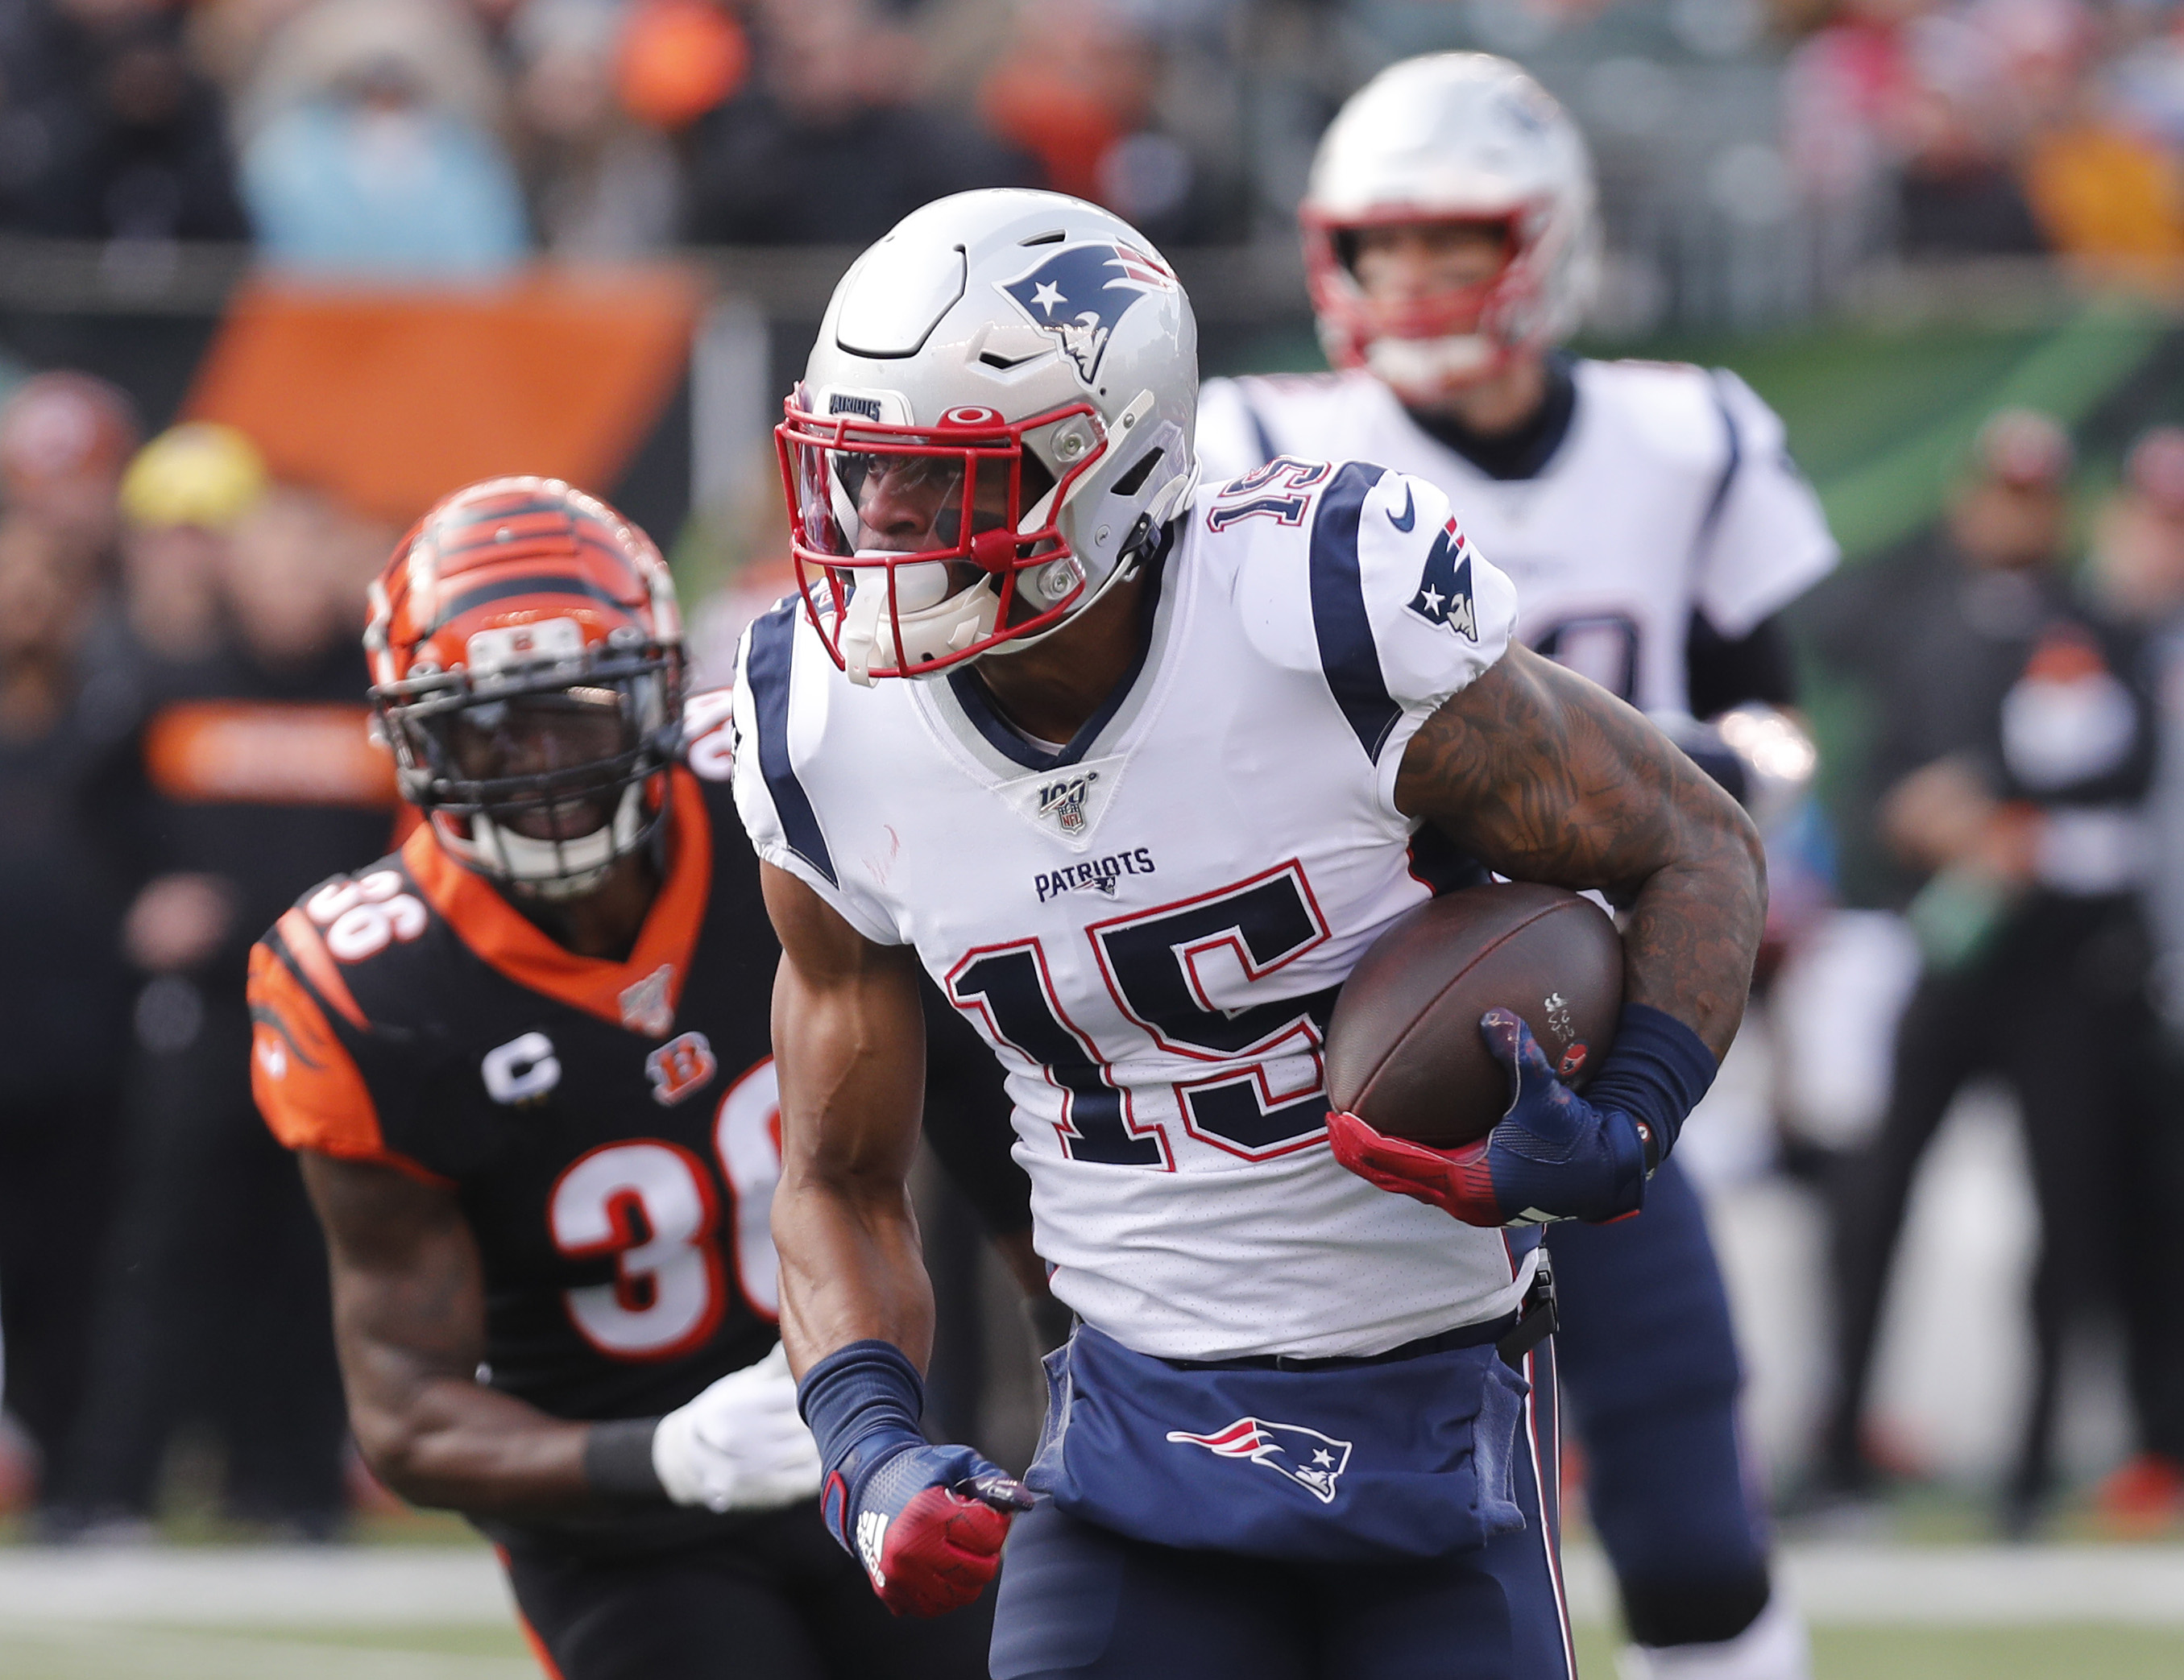 Patriots Offense Continues to Struggle, But Defense Prevails During 34-13 Win Over Bengals